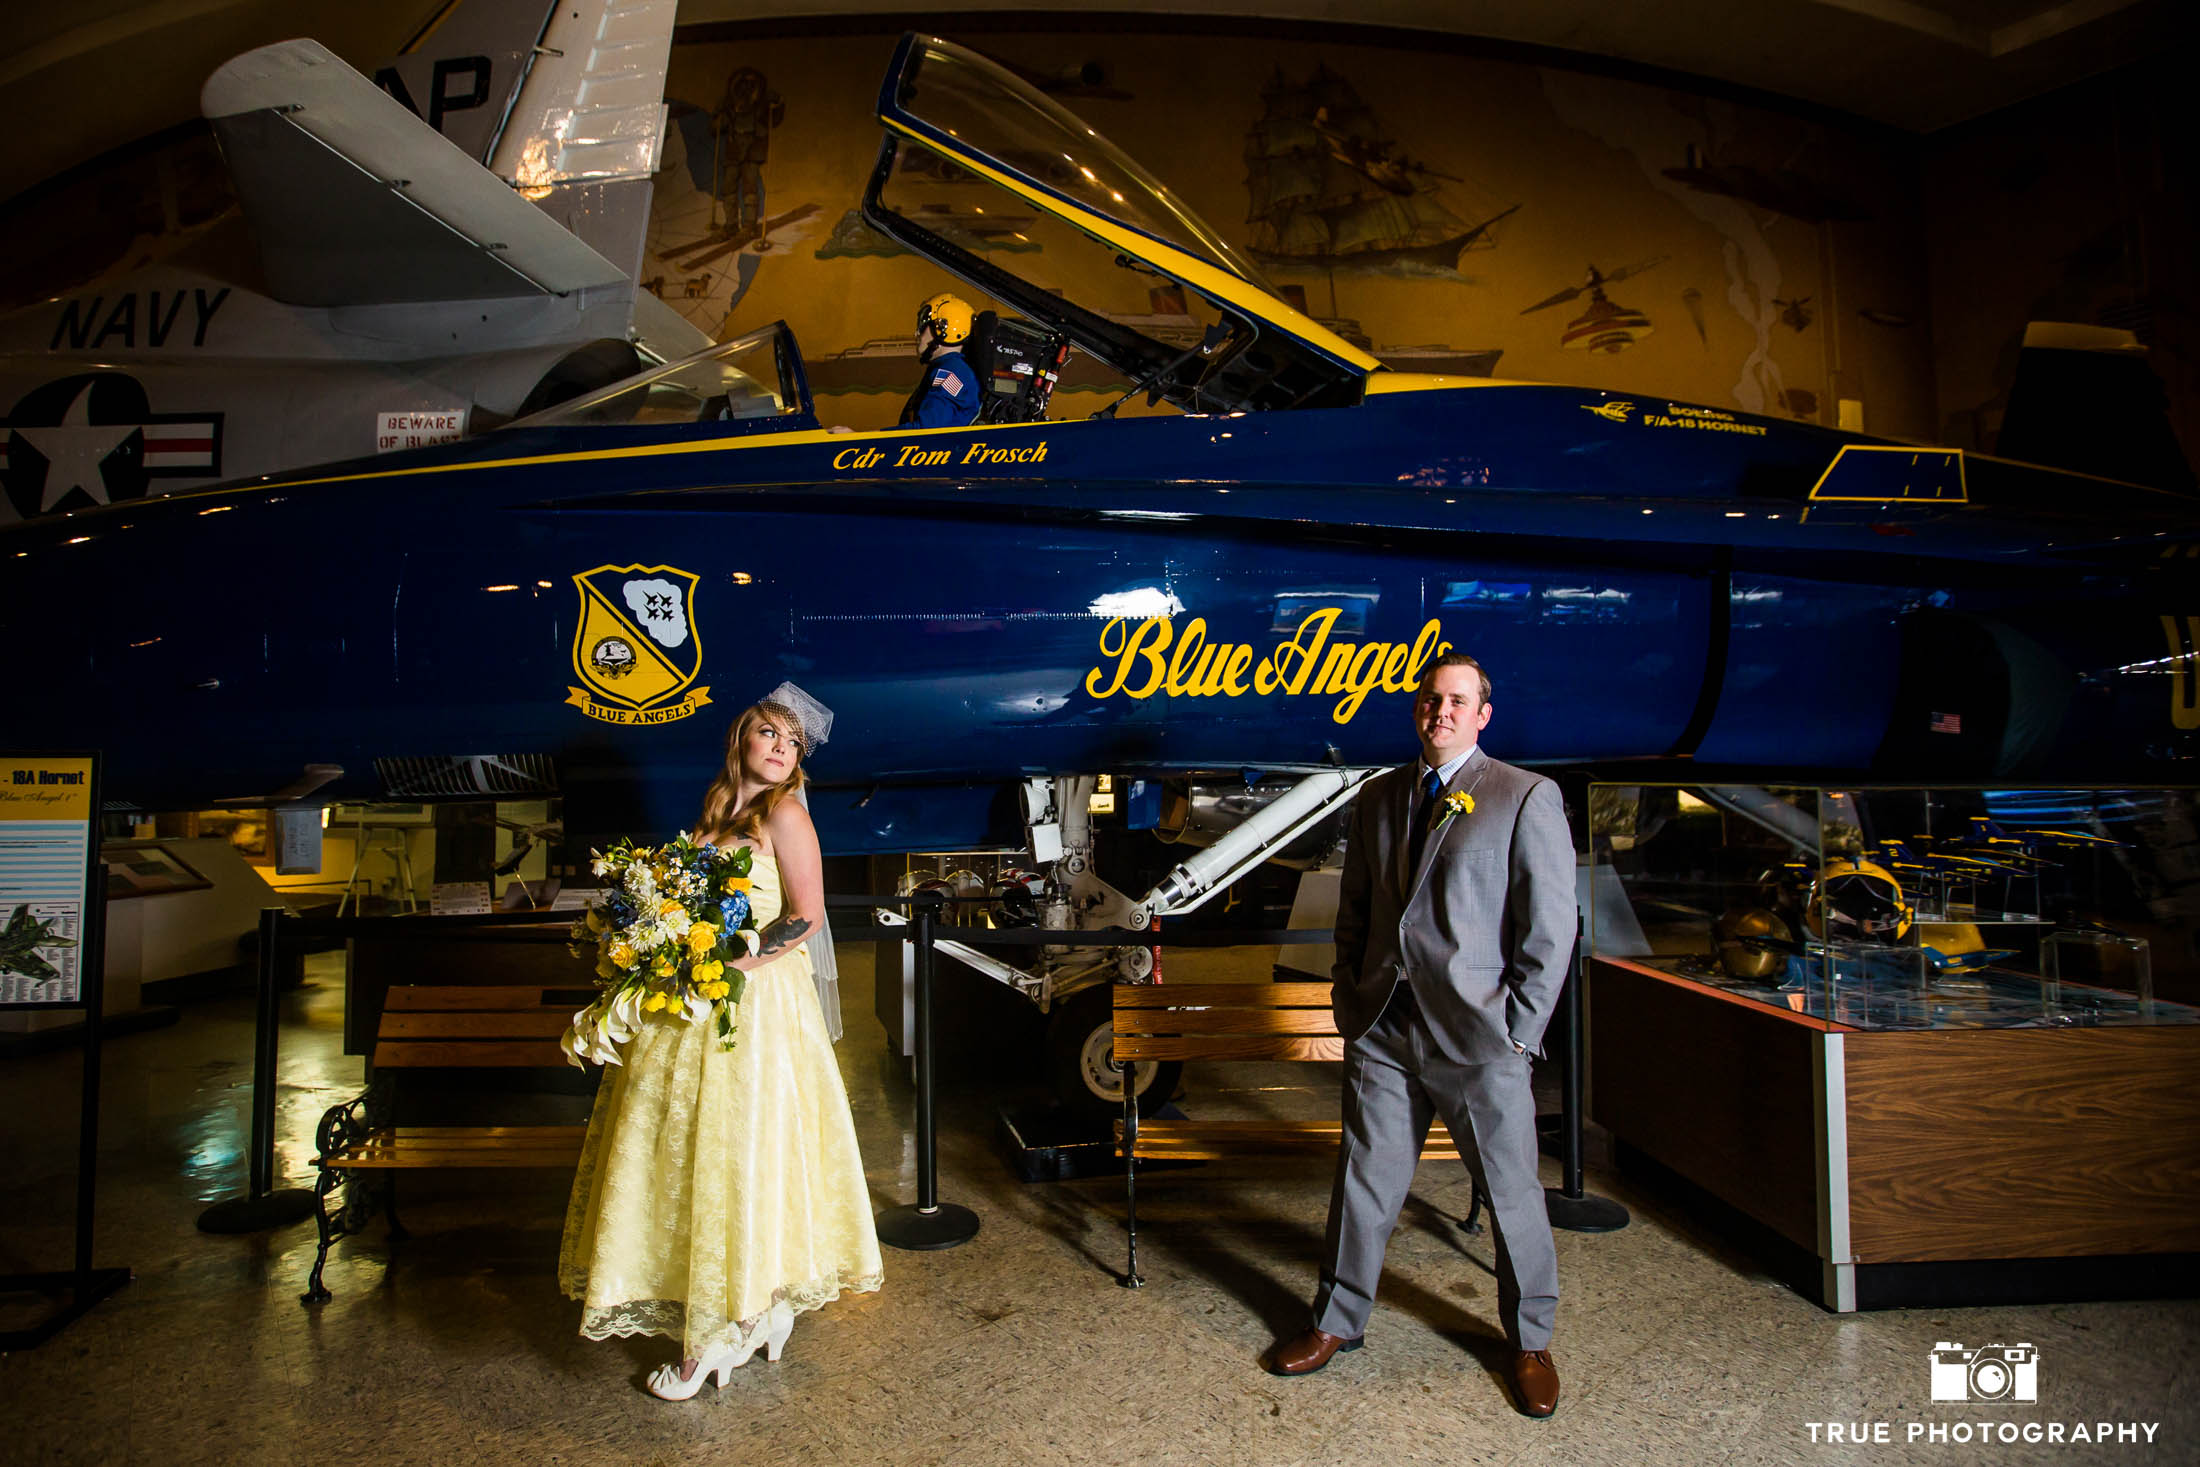 Bride and Groom stand in front of Blue Angels airplane at museum on wedding day